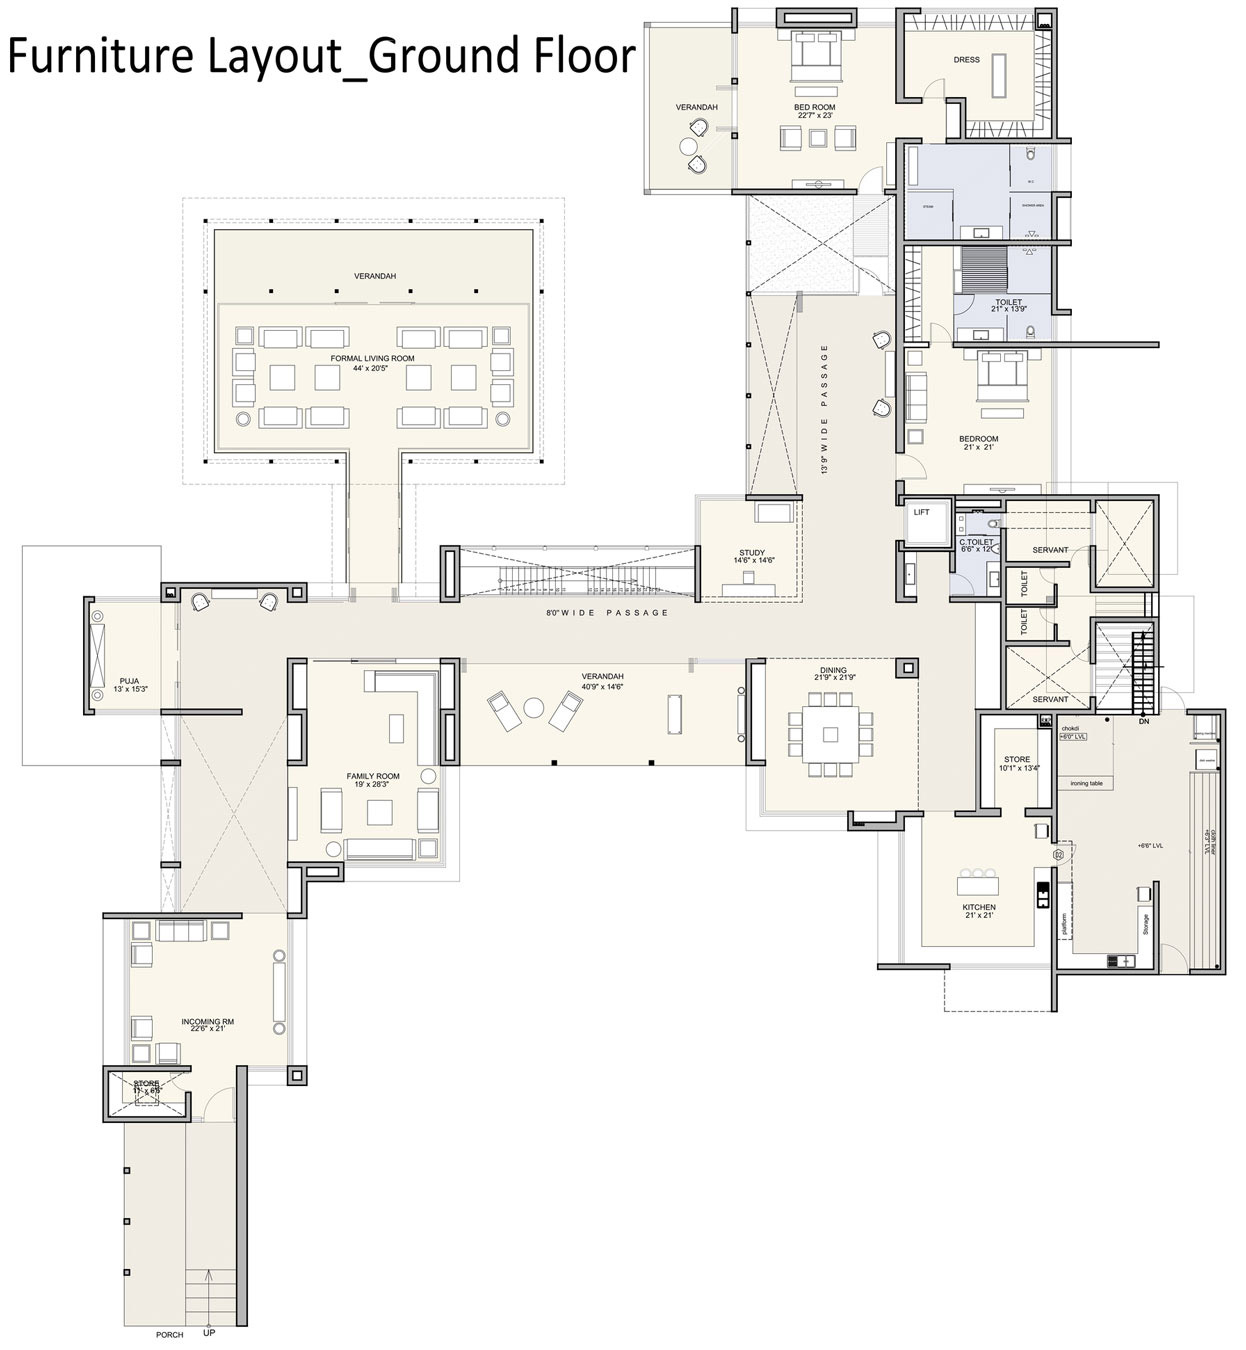 Ground Floor Furniture Layout Contemporary House In Ahmedabad India